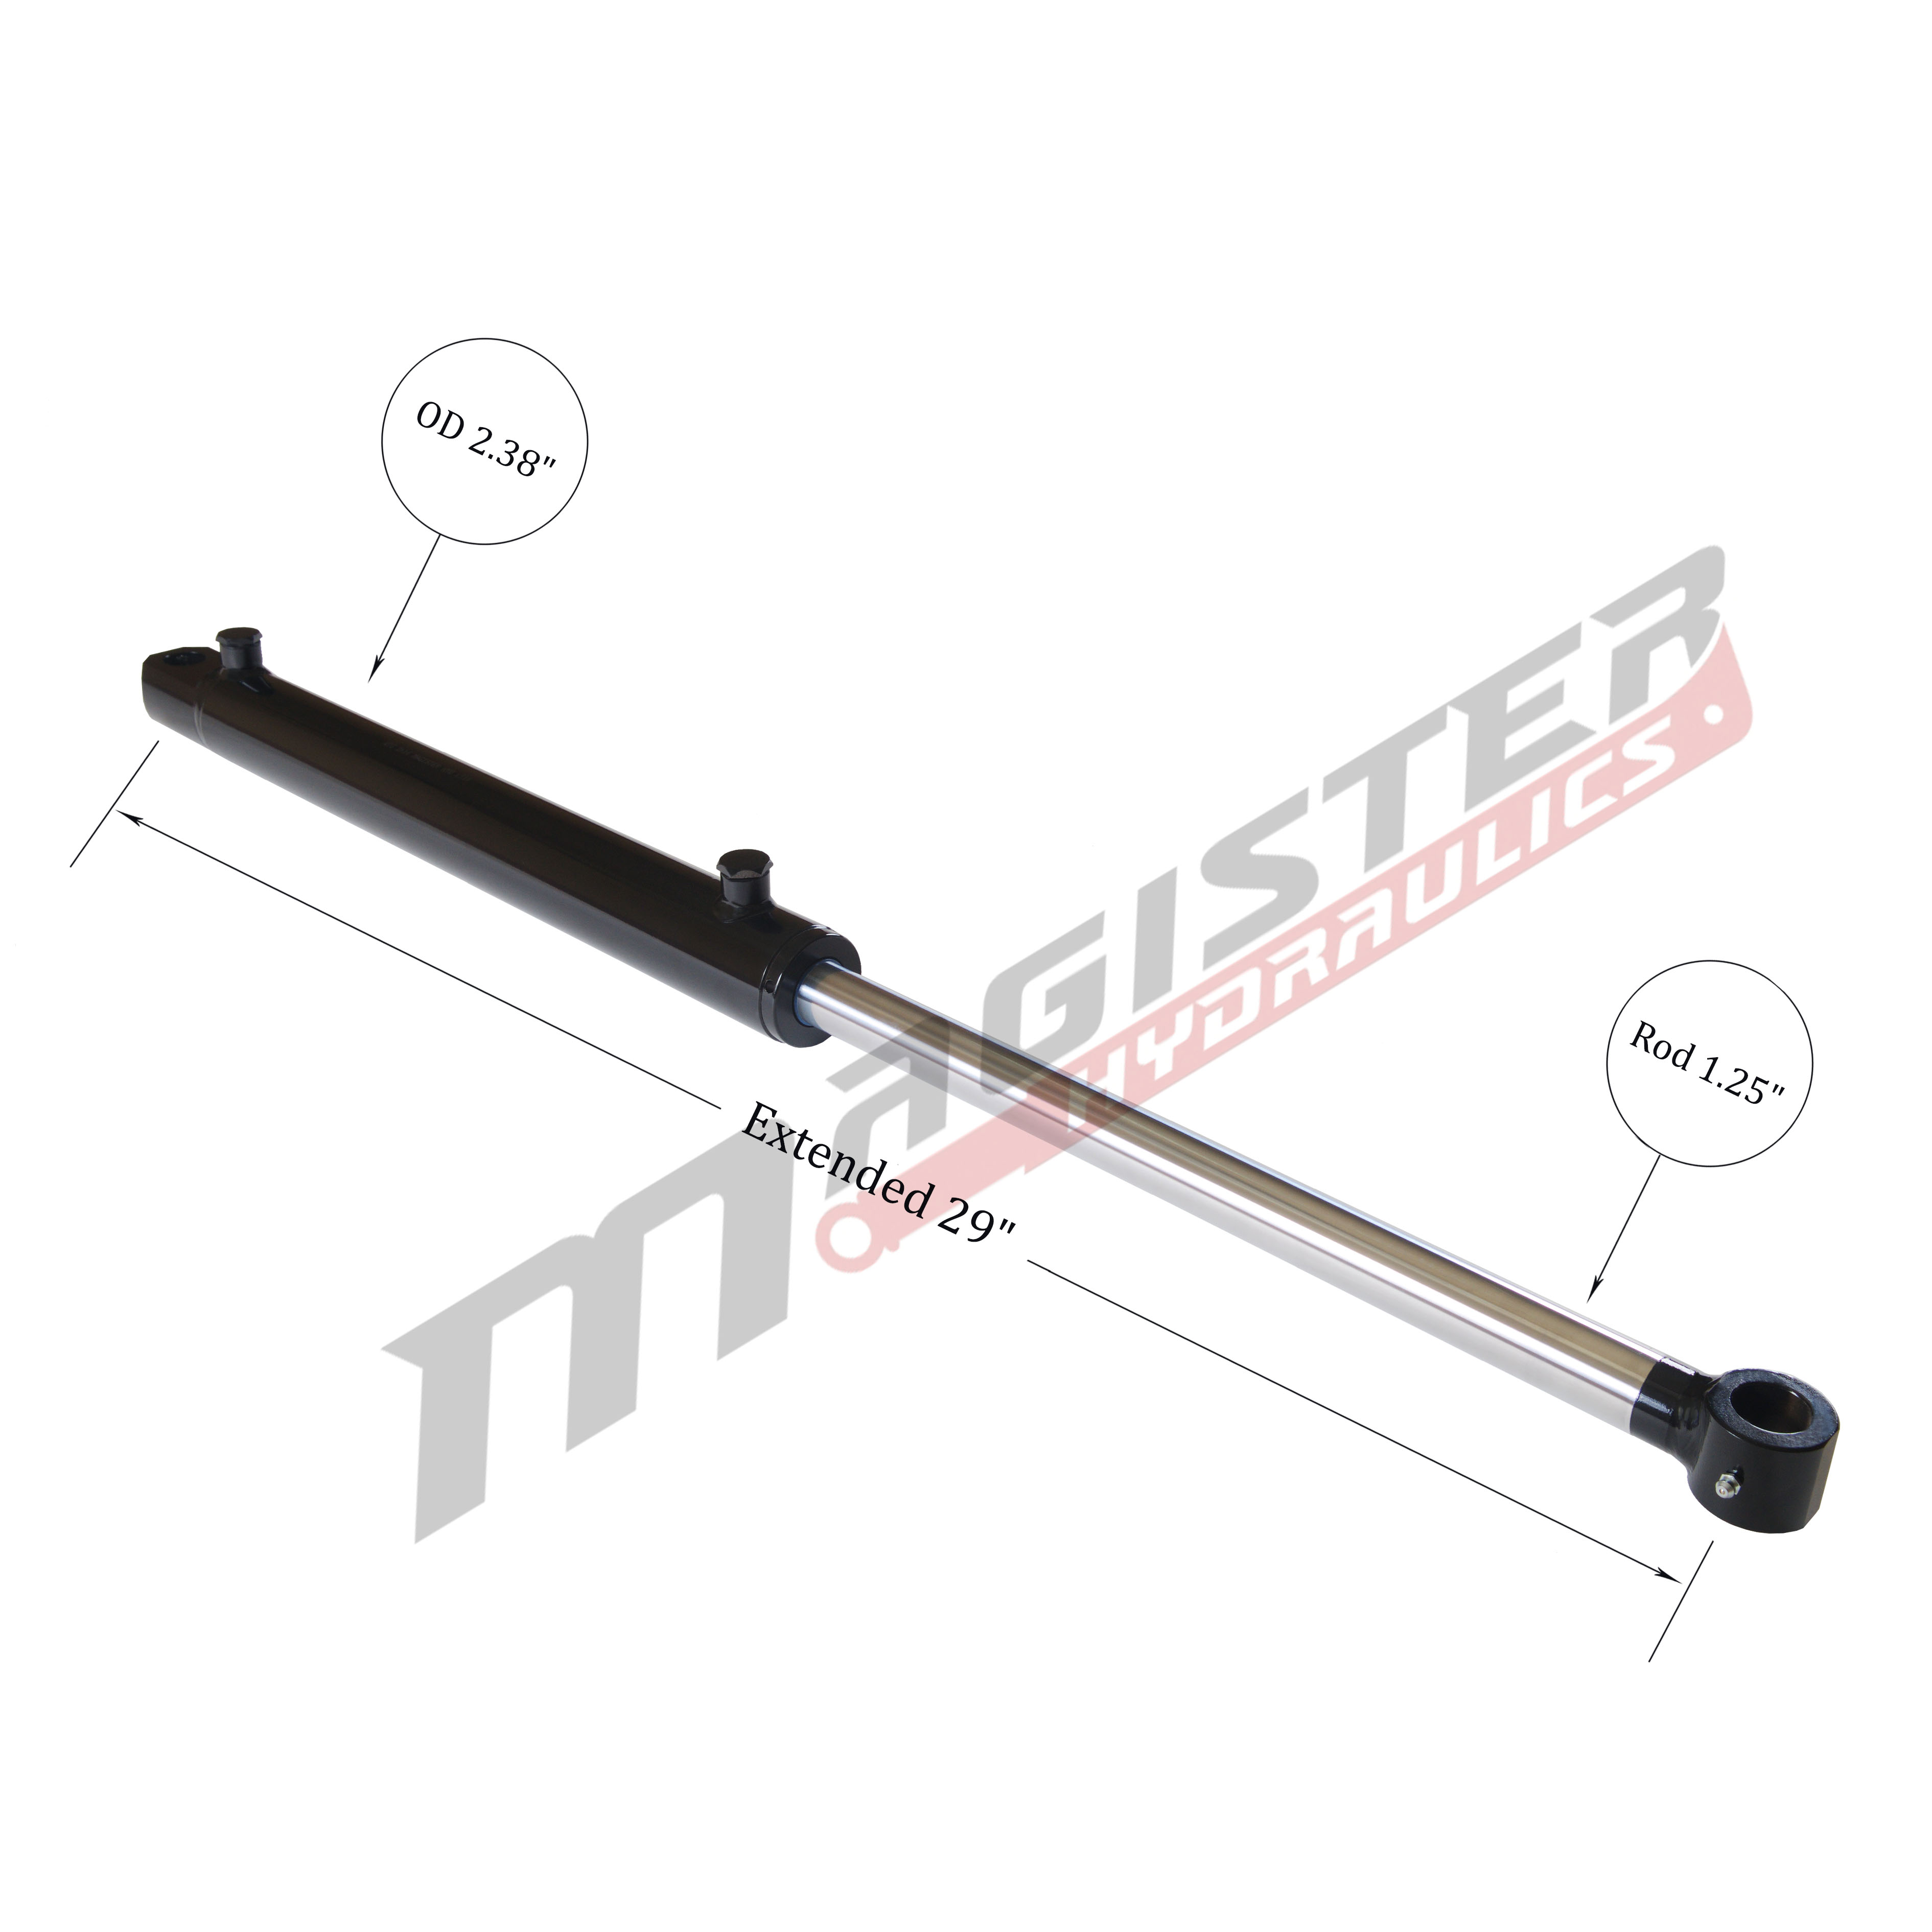 2 bore x 10 stroke hydraulic cylinder, welded tang double acting cylinder | Magister Hydraulics